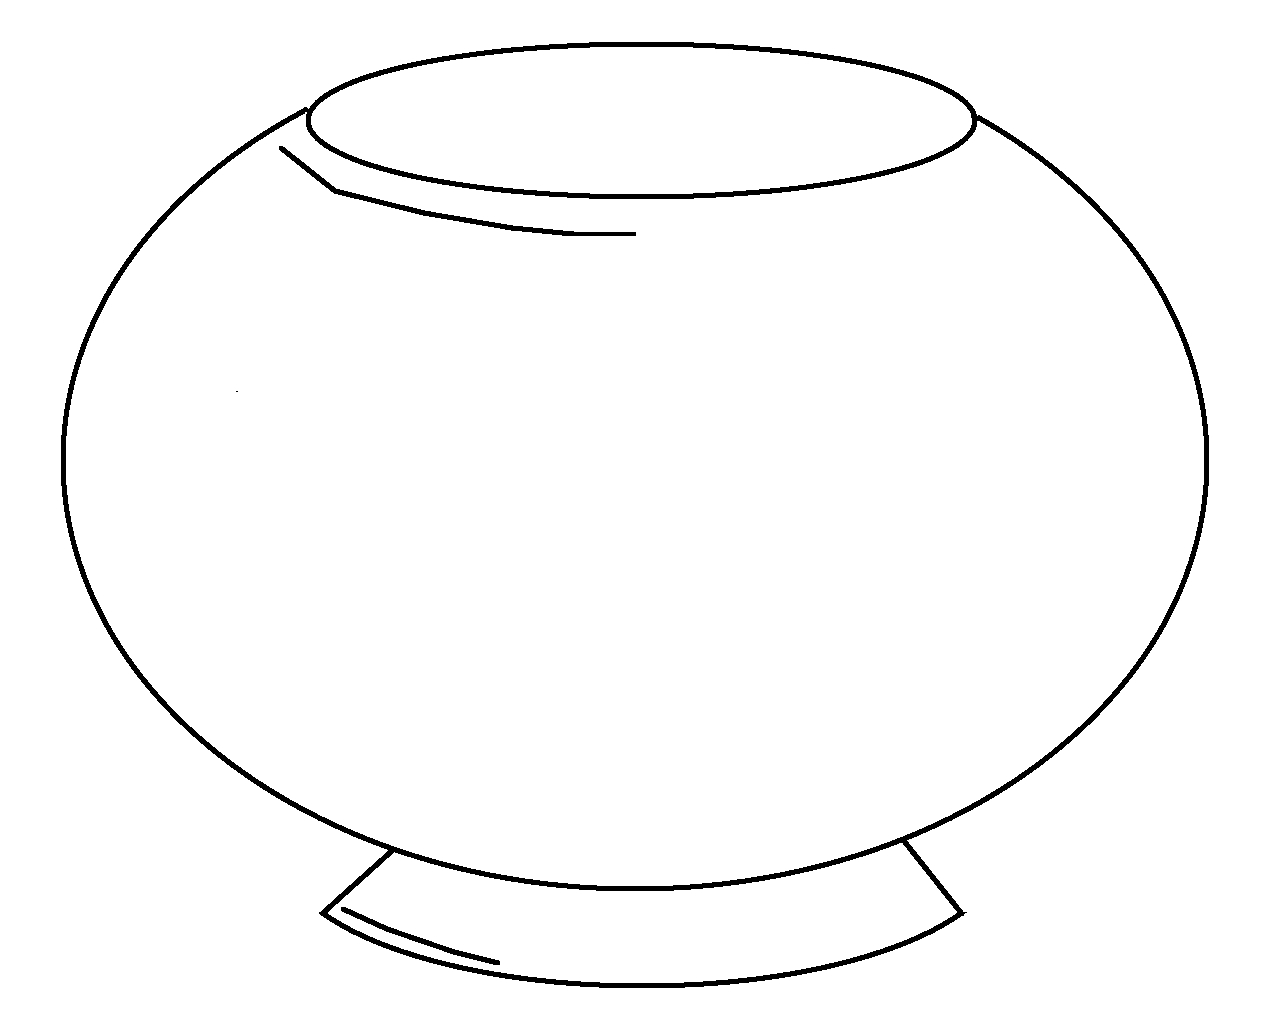 free fish coloring pages - fish bowl coloring sheet